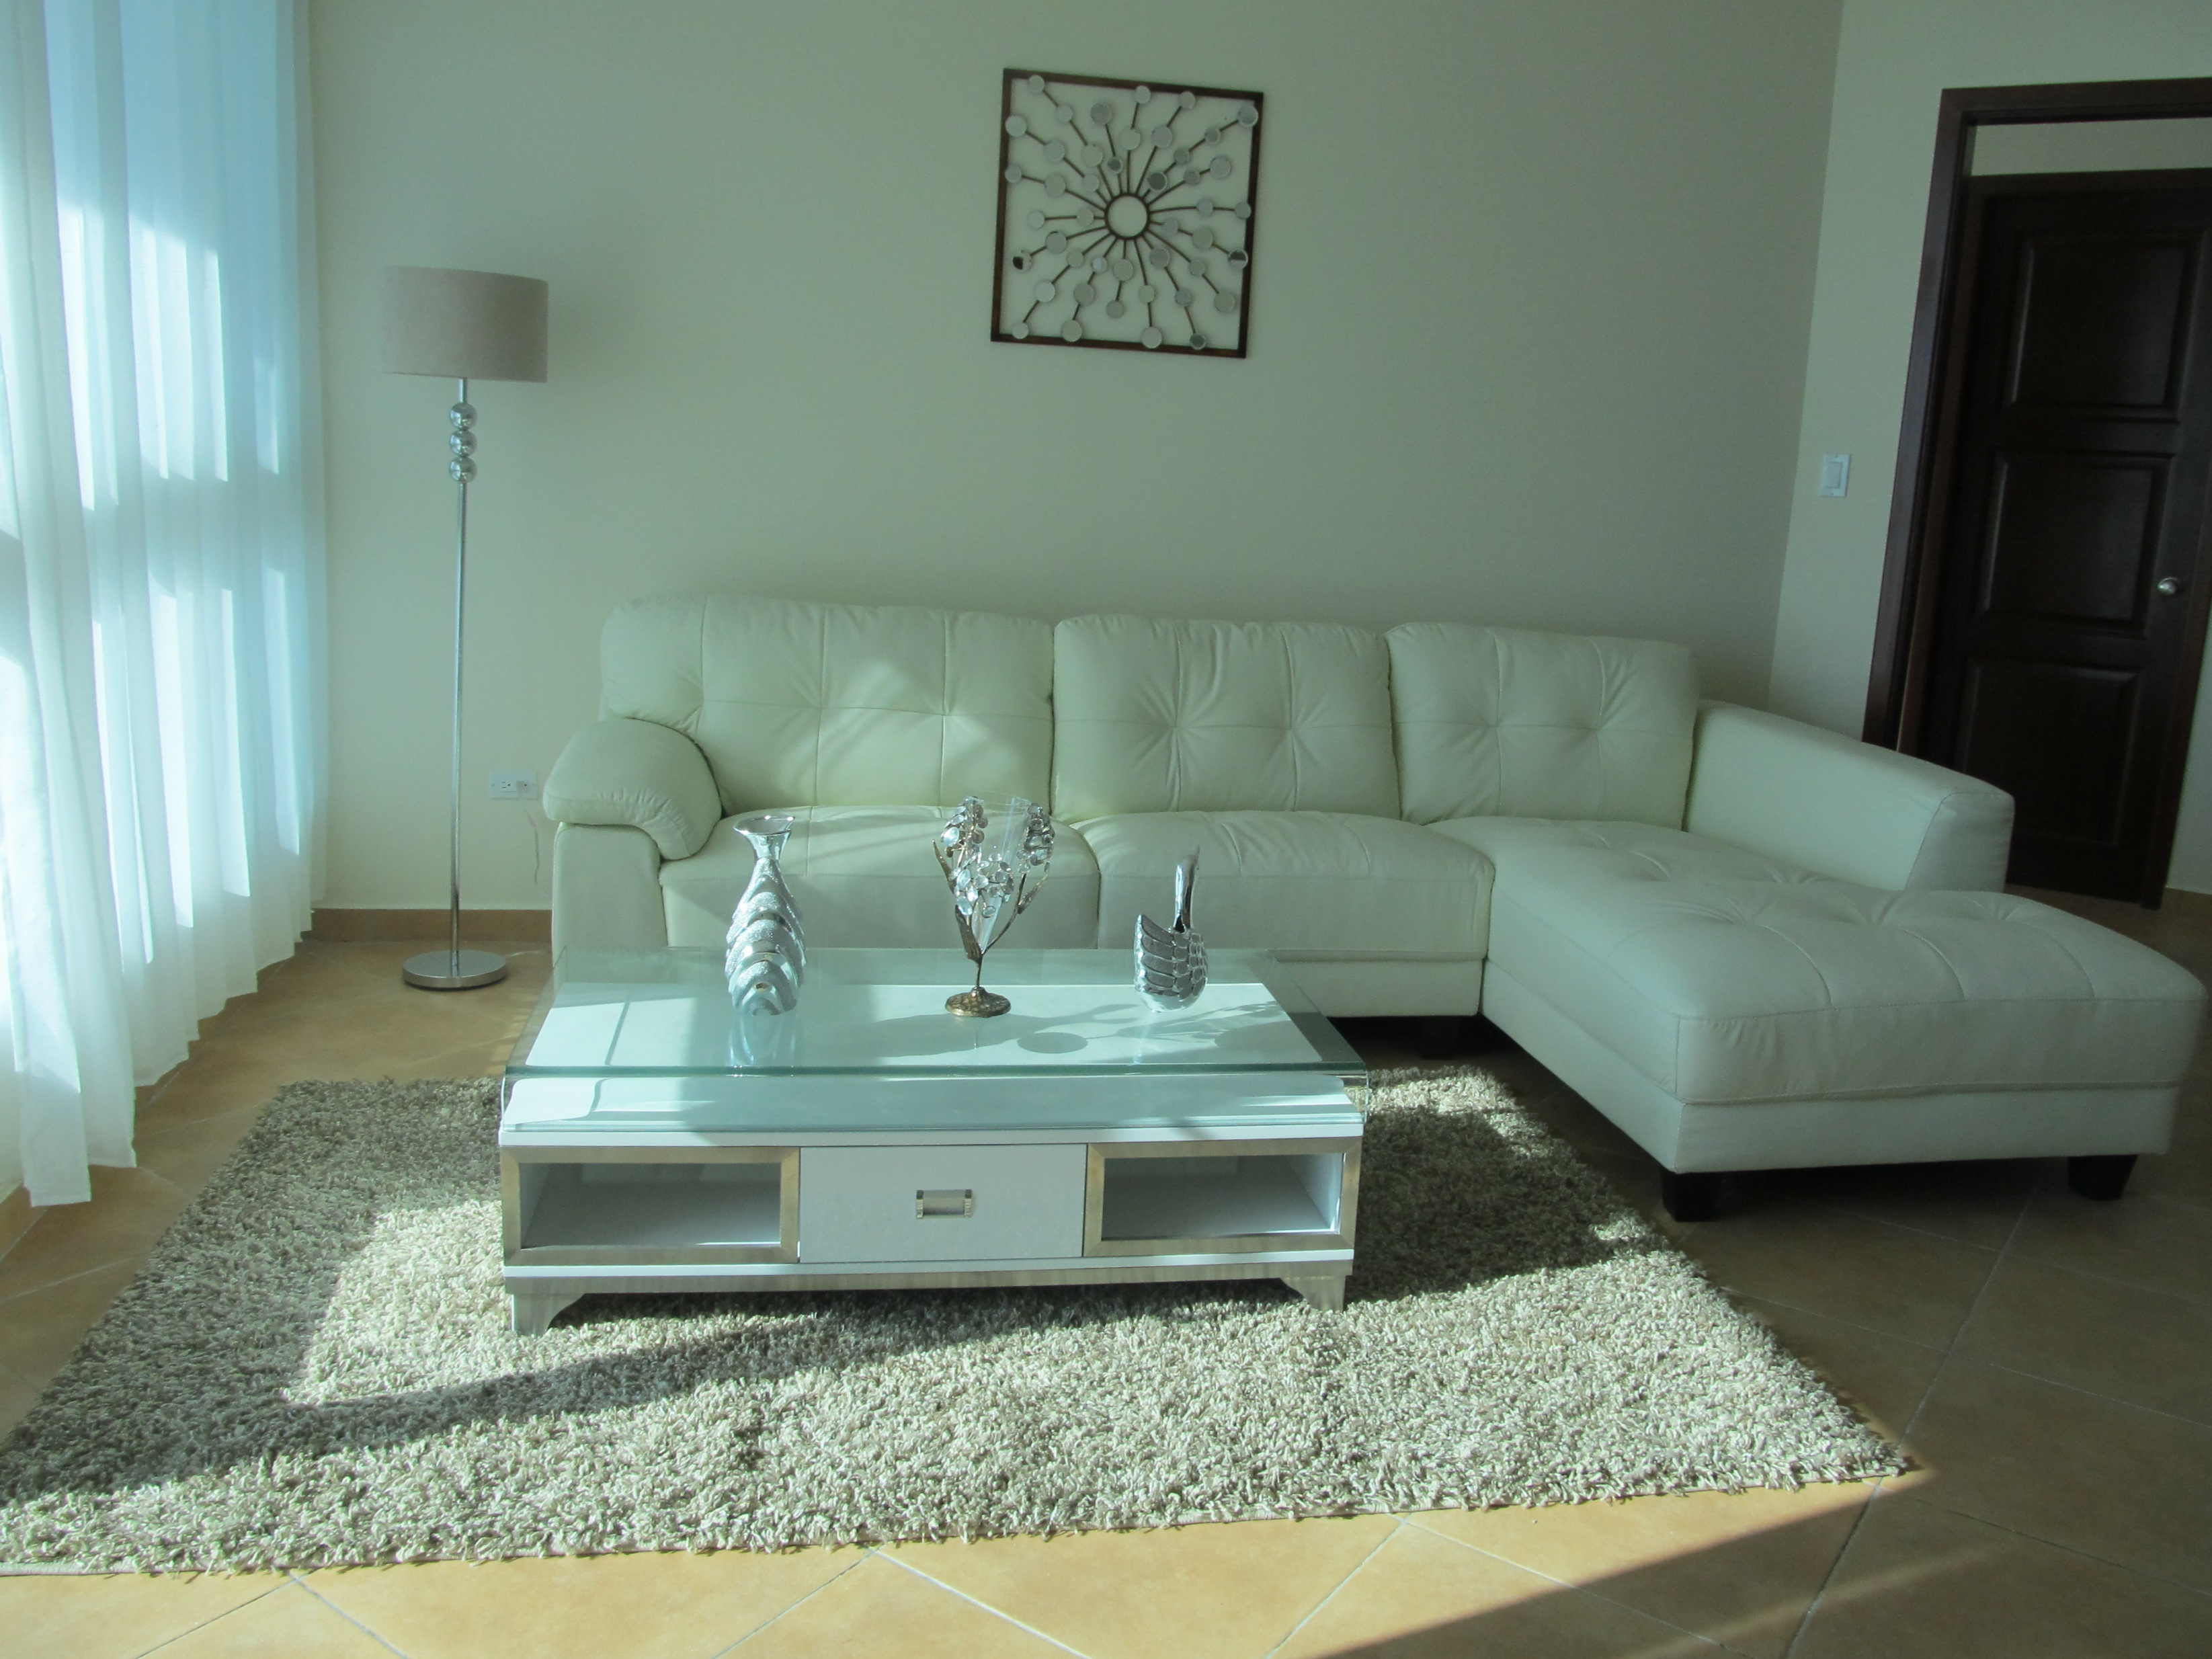 2 bedroom apartments 3 bathroom 4 6 person 165 sq for Living room 10 square meters